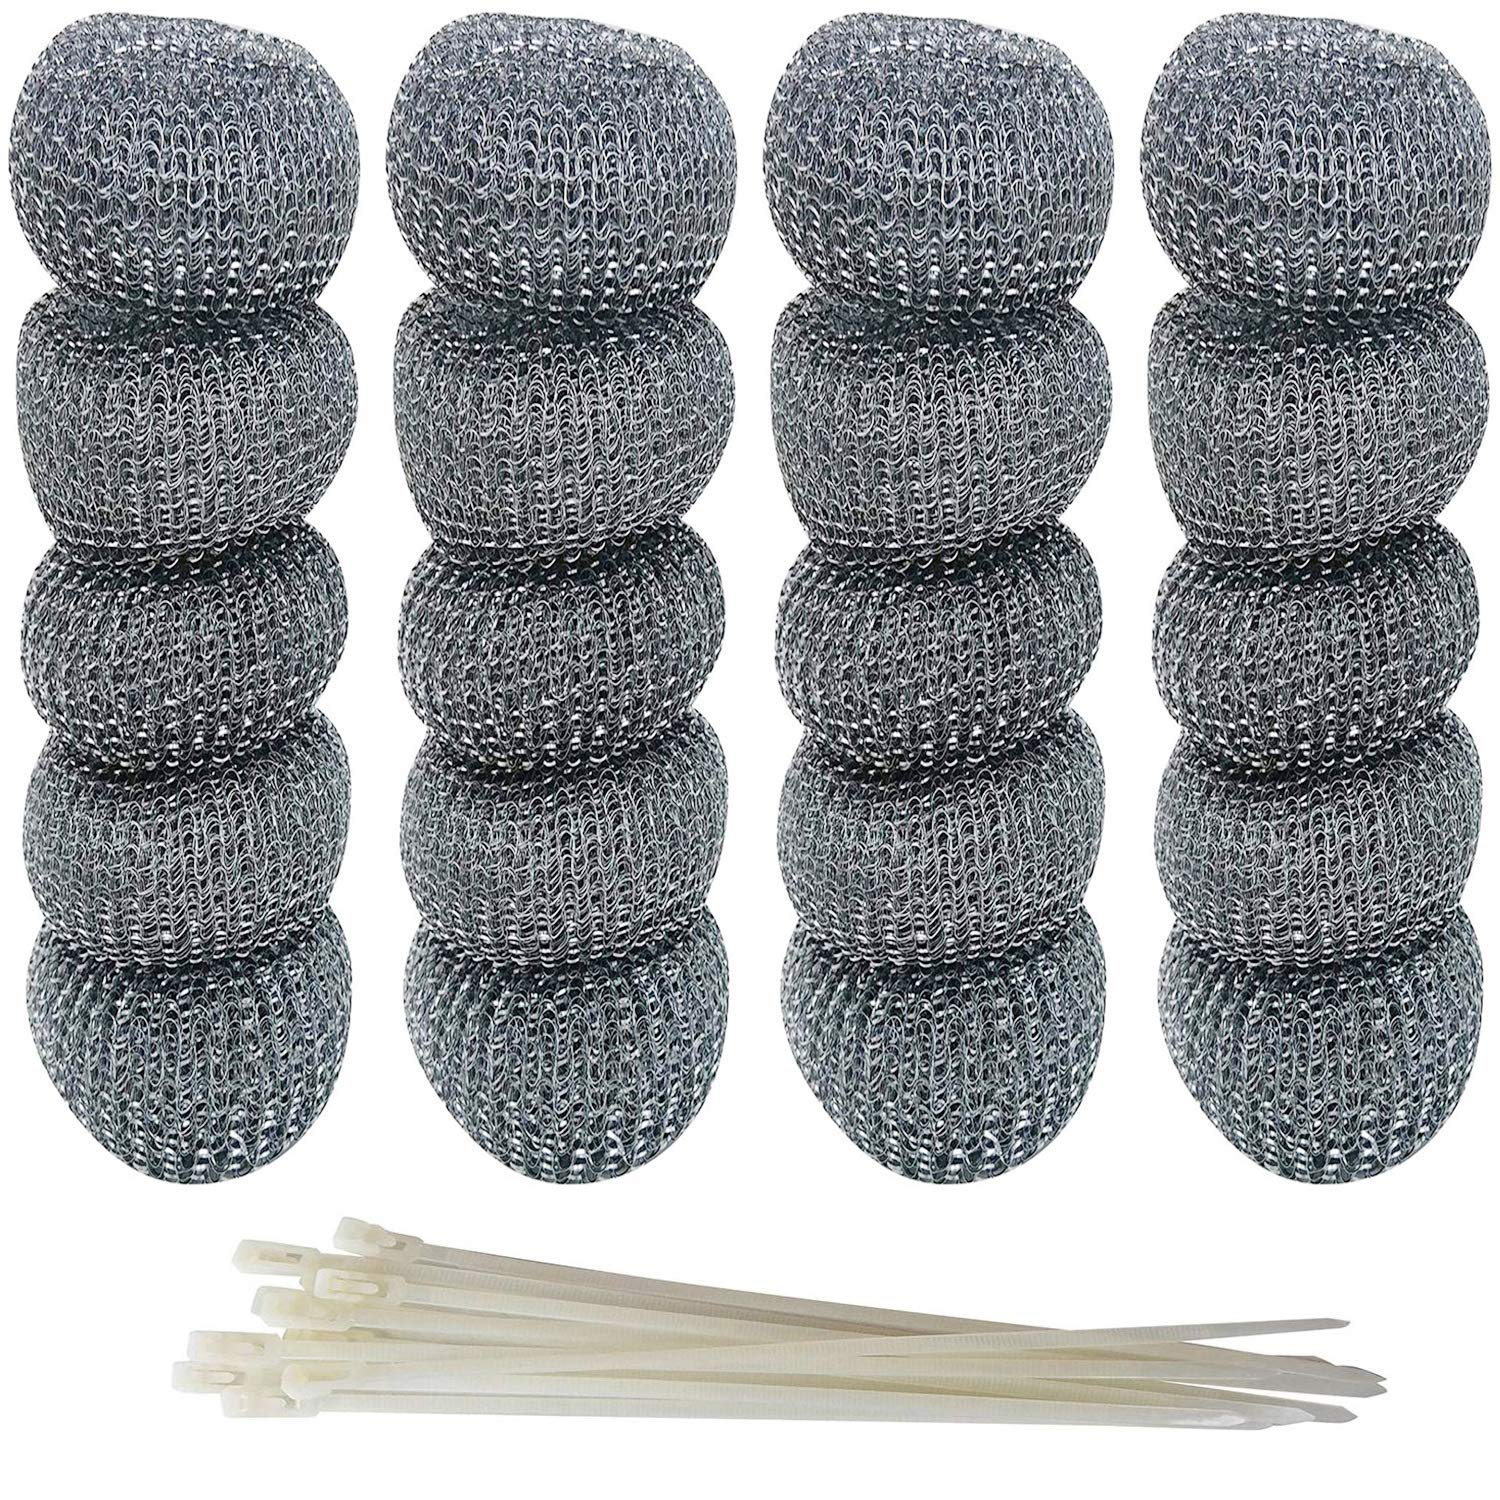 MANSHU 48 Pieces Galvanized Iron Washing Machine Lint Traps Snare Laundry Mesh Washer Hose Filter with 48 Pieces Cable Ties.